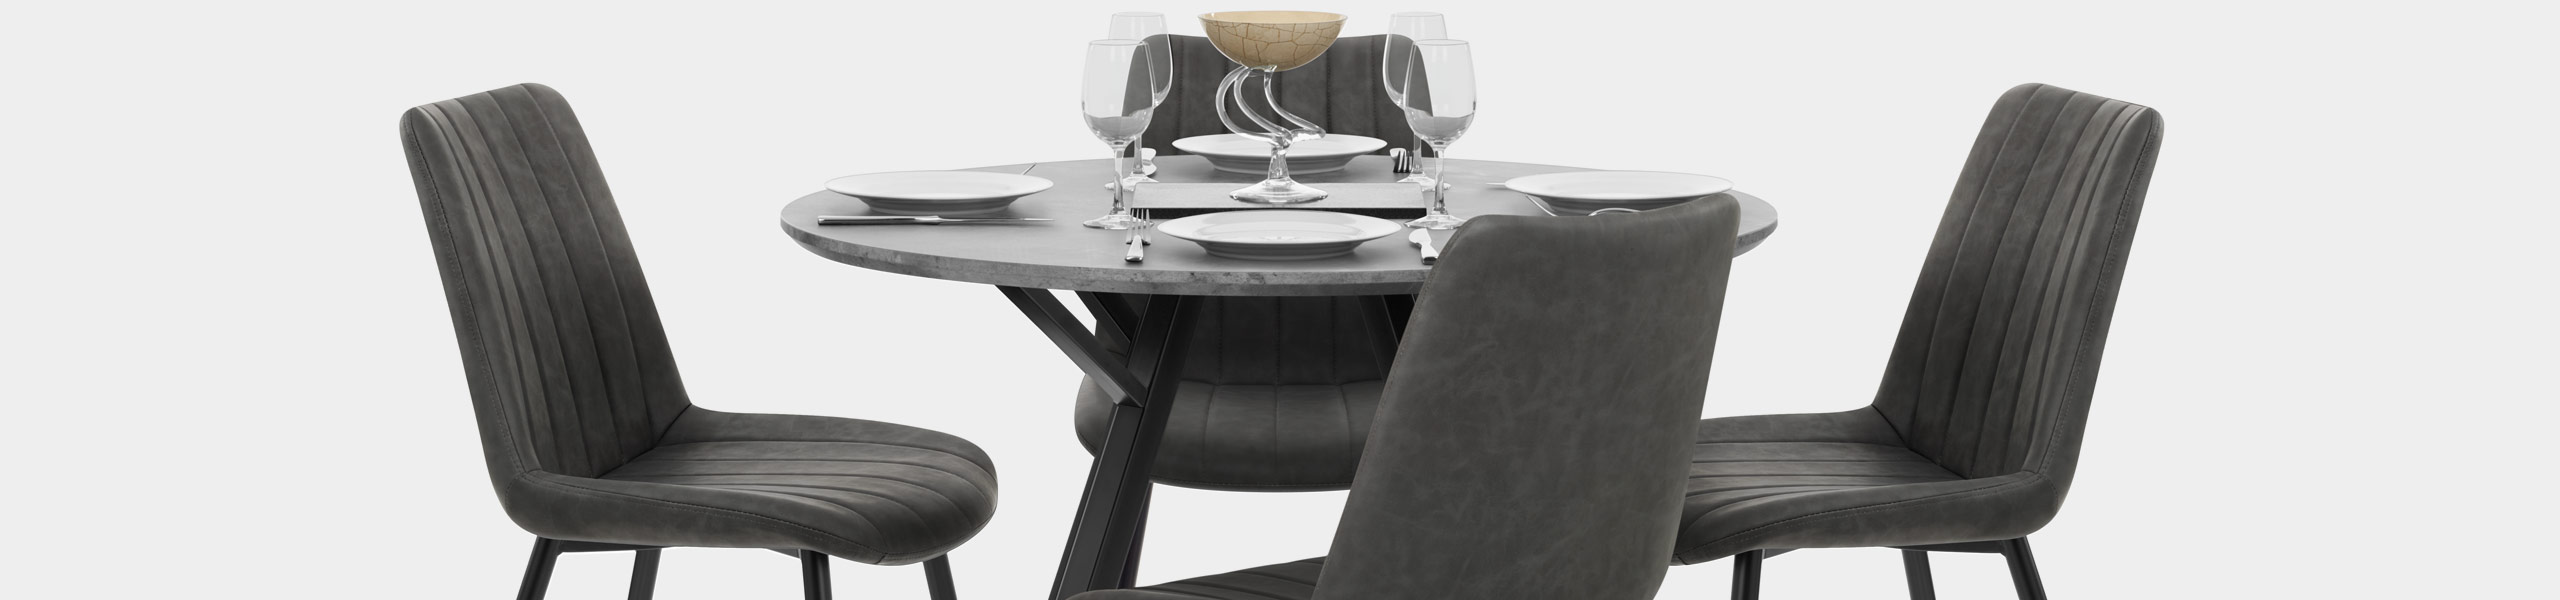 Sussex Dining Set Concrete & Charcoal Video Banner